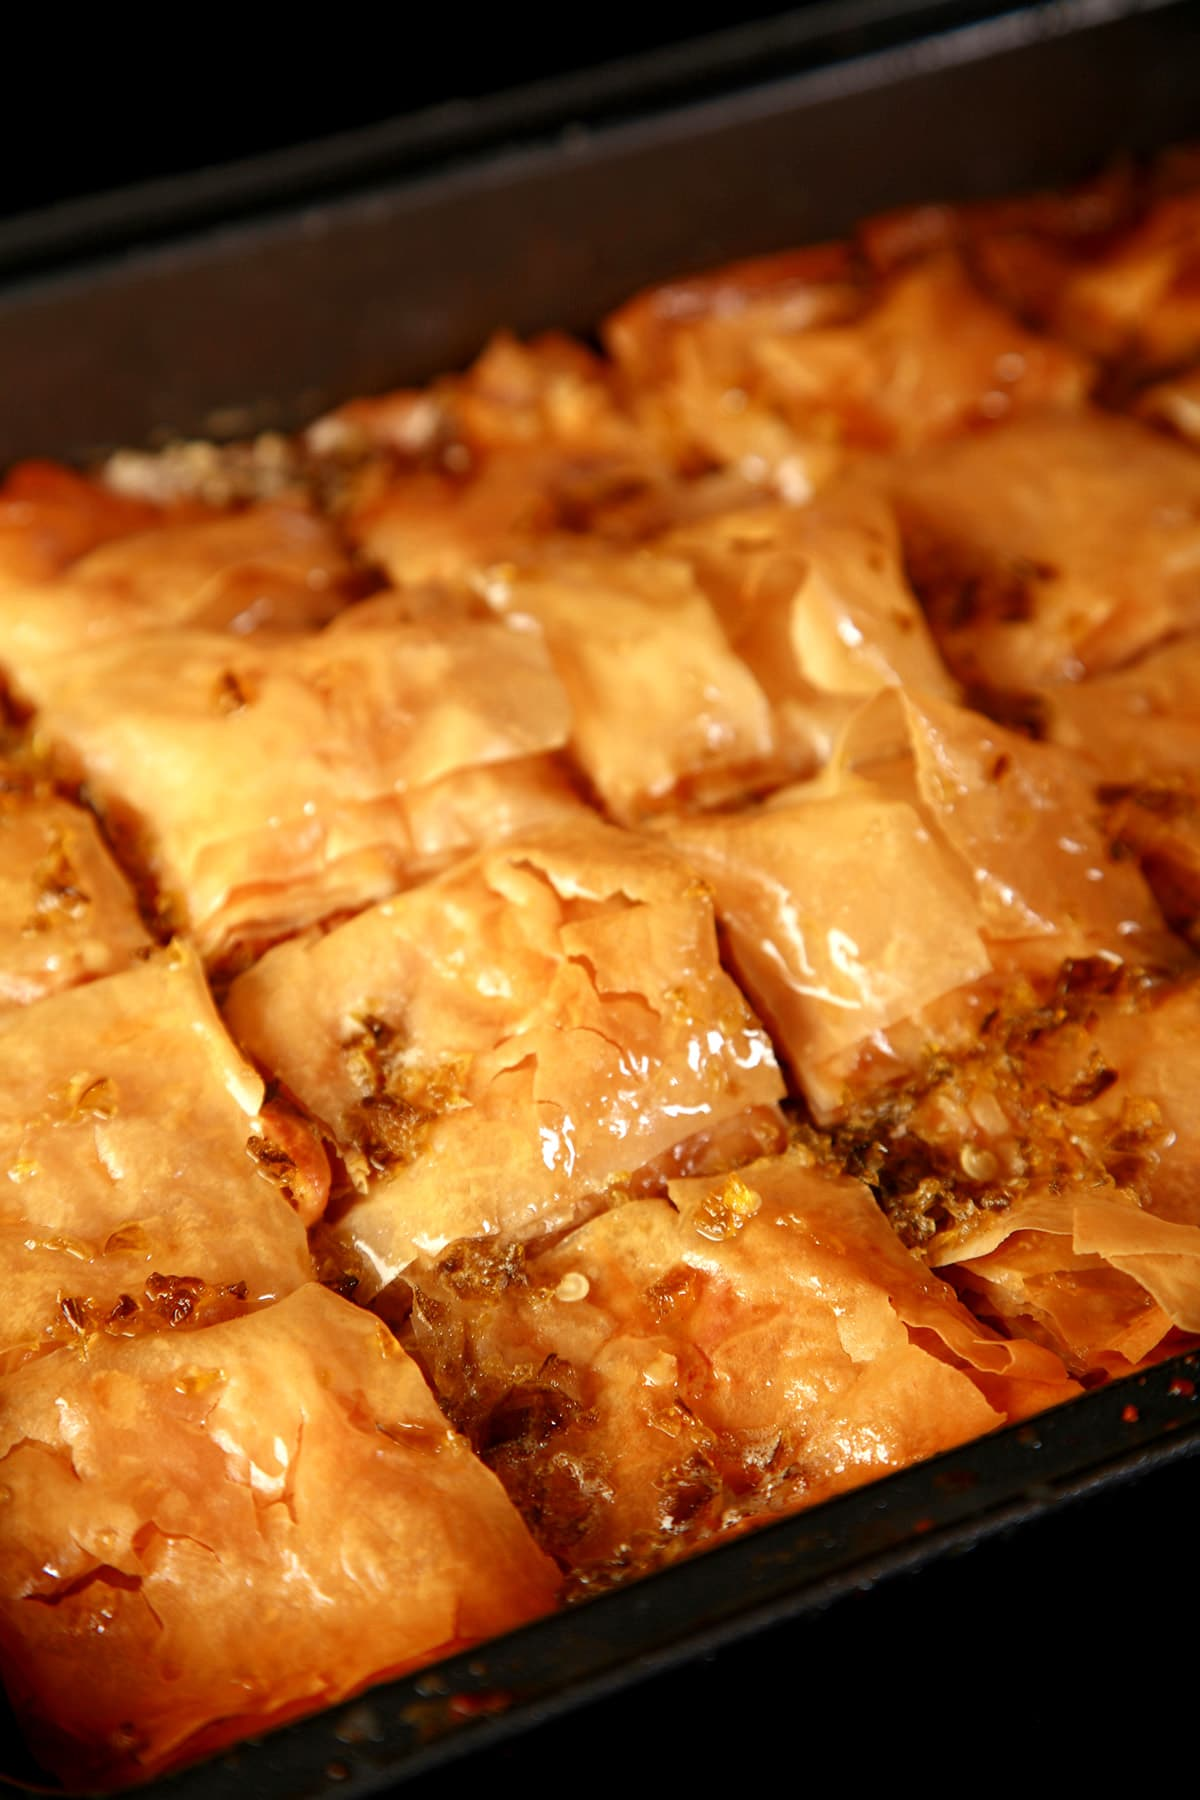 A close up view of a pan of jalapeno beer baklava, cut into squares.